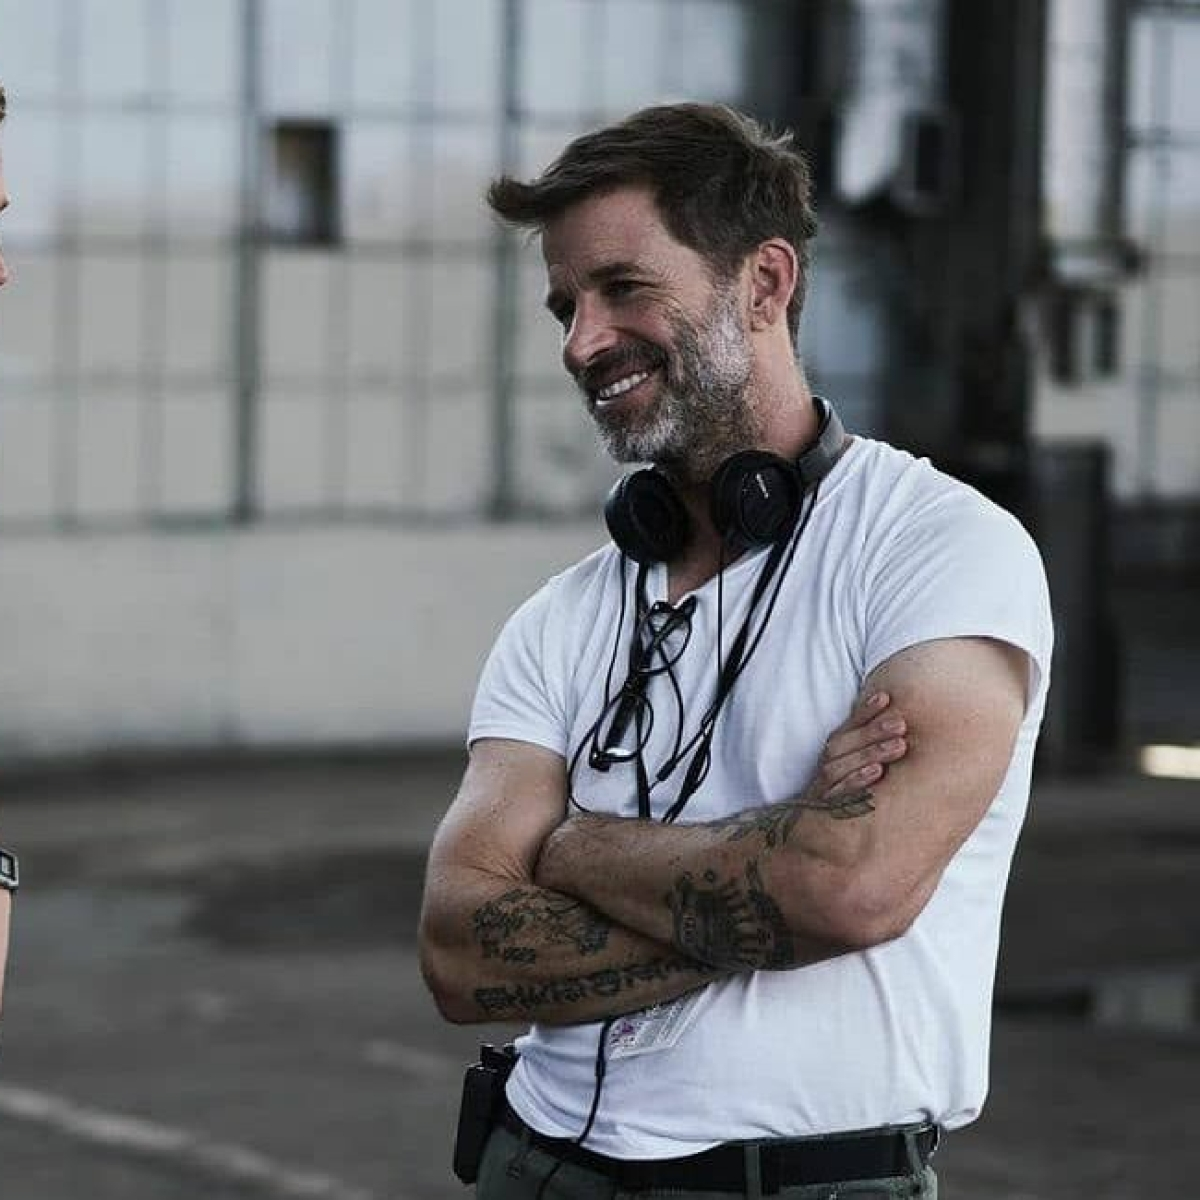 'No sitting down': Zack Snyder reveals why he banned chairs from 'Army of the Dead' set